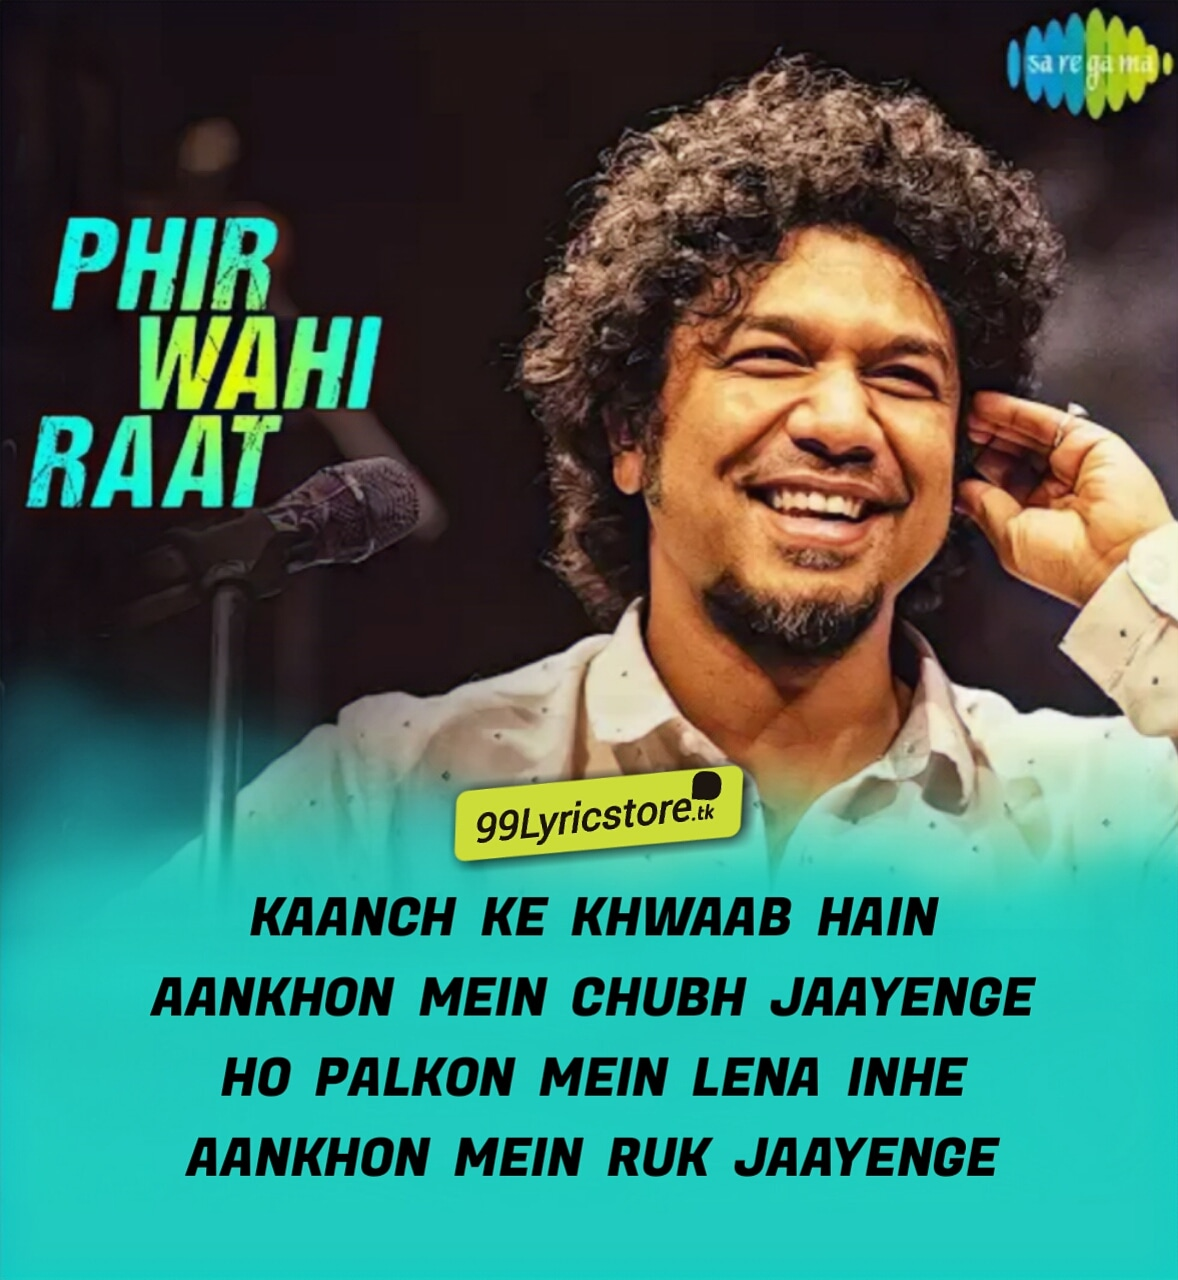 Phir Wahi Raat Hain Recreated Song Sung by Papon